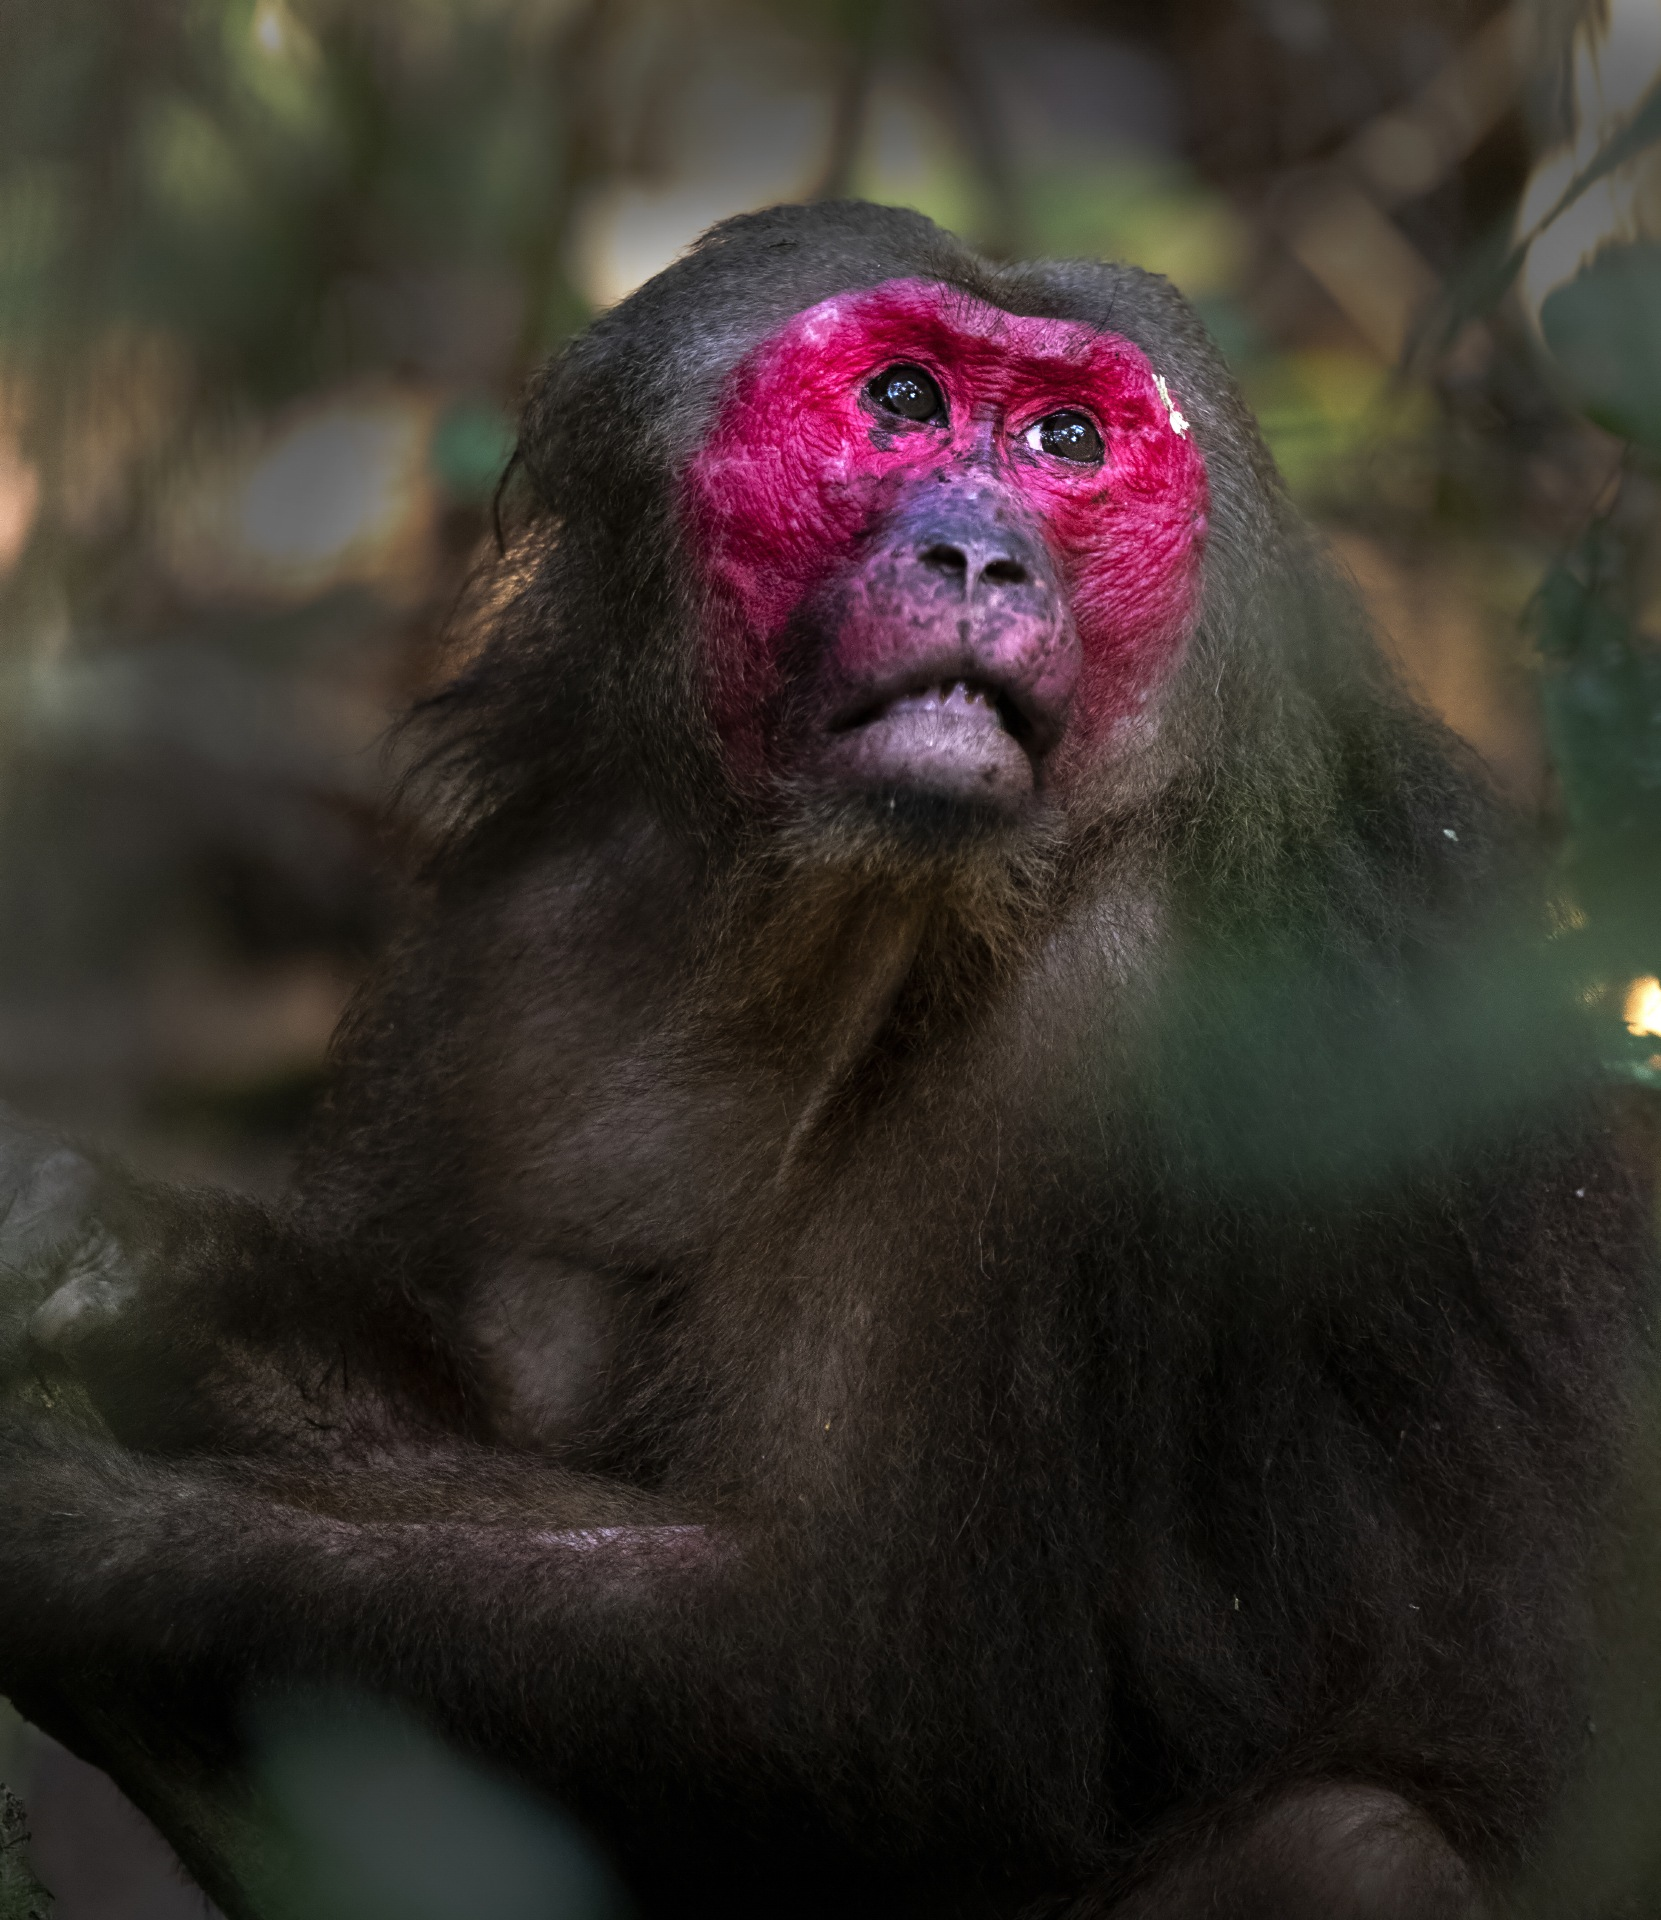 The stump-tailed macaque is easily identified by its strikingly bright reddish-pink face, which turns darker with age. Photo: Udayan Borthakur